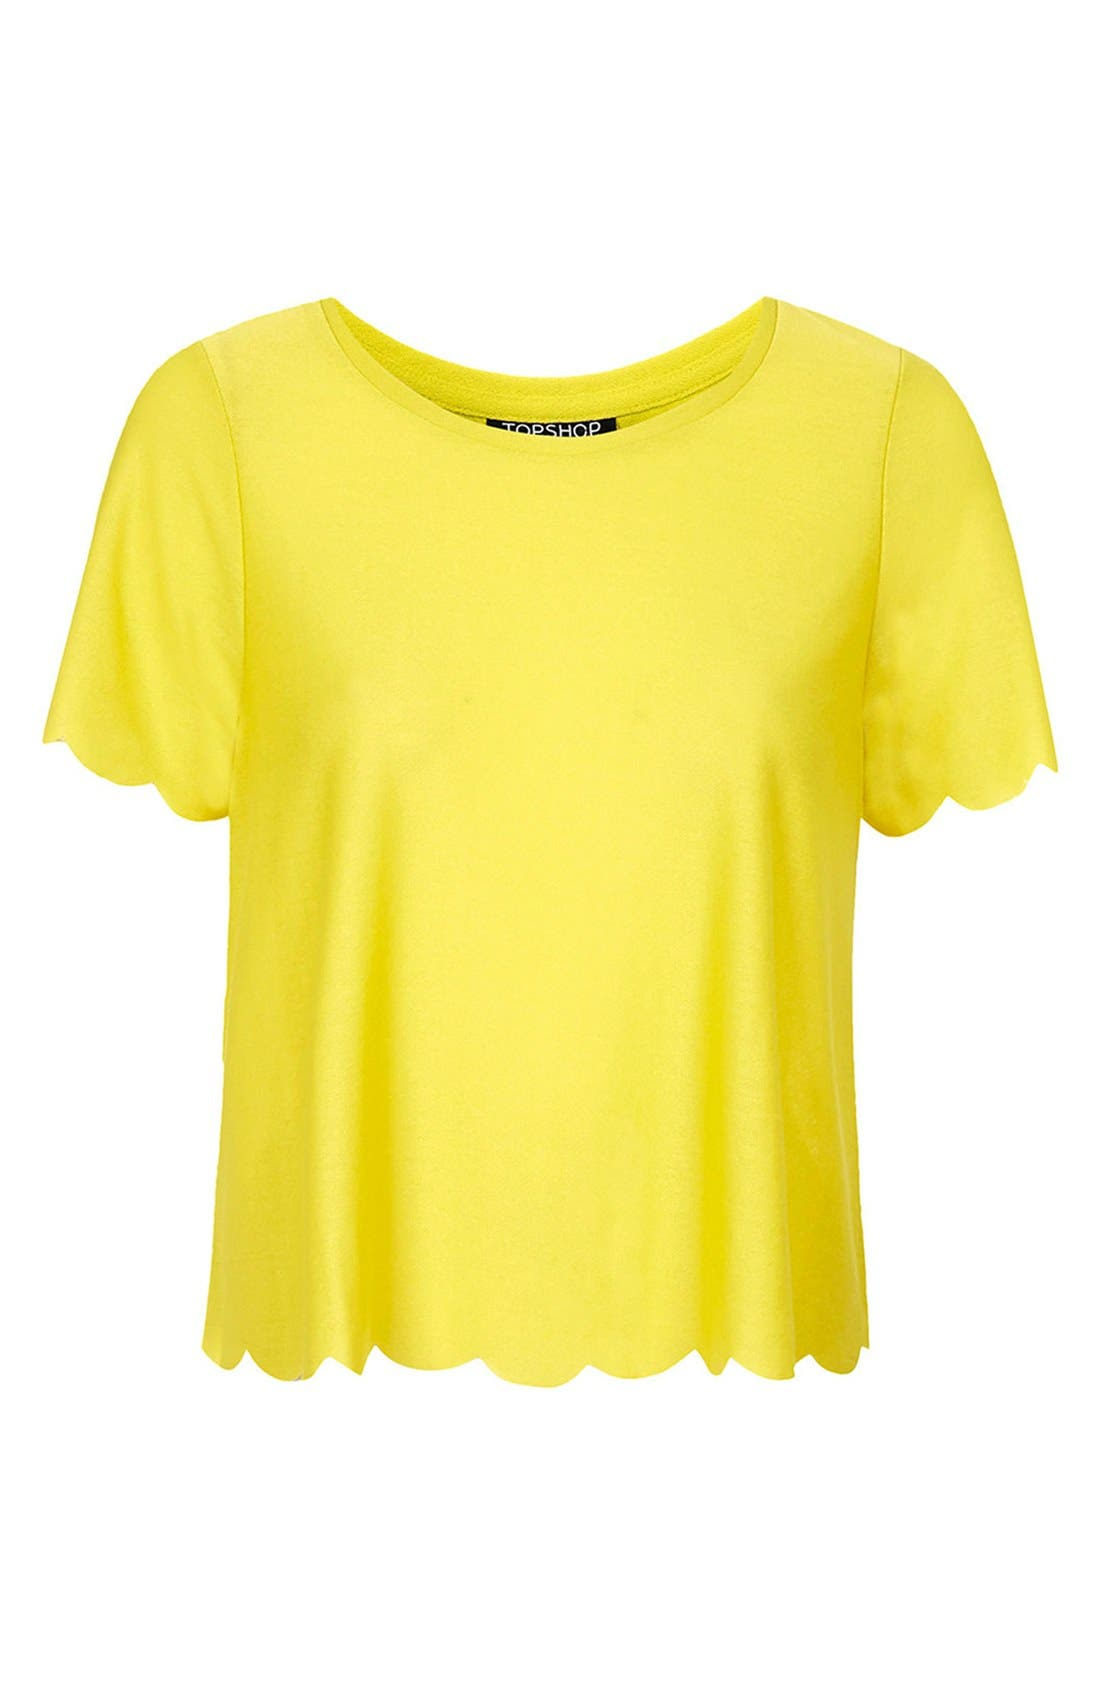 Scallop Frill Tee,                             Alternate thumbnail 18, color,